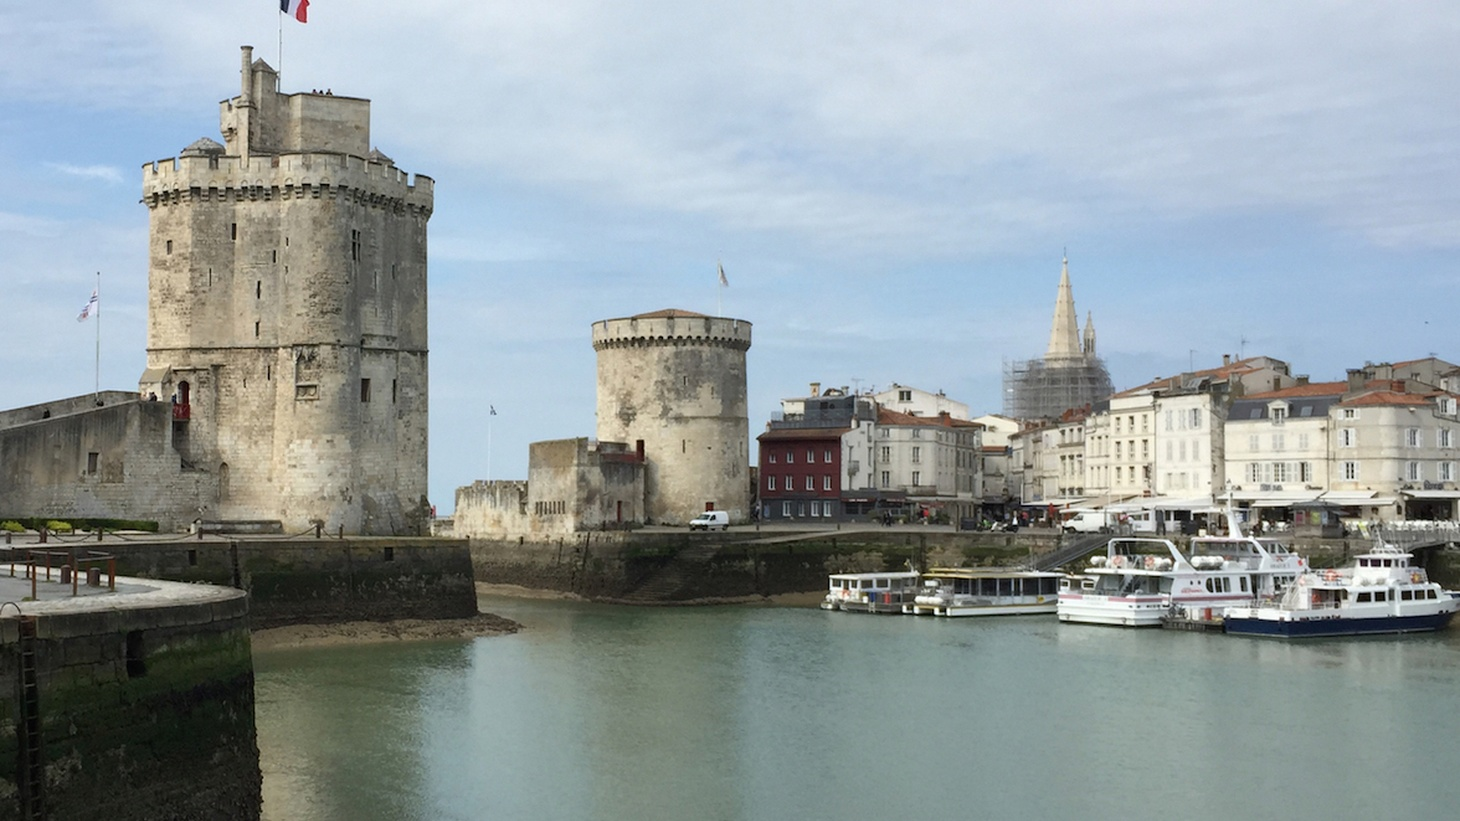 Edward Goldman explores the cultural offerings of the Poitou-Charentes region of France.